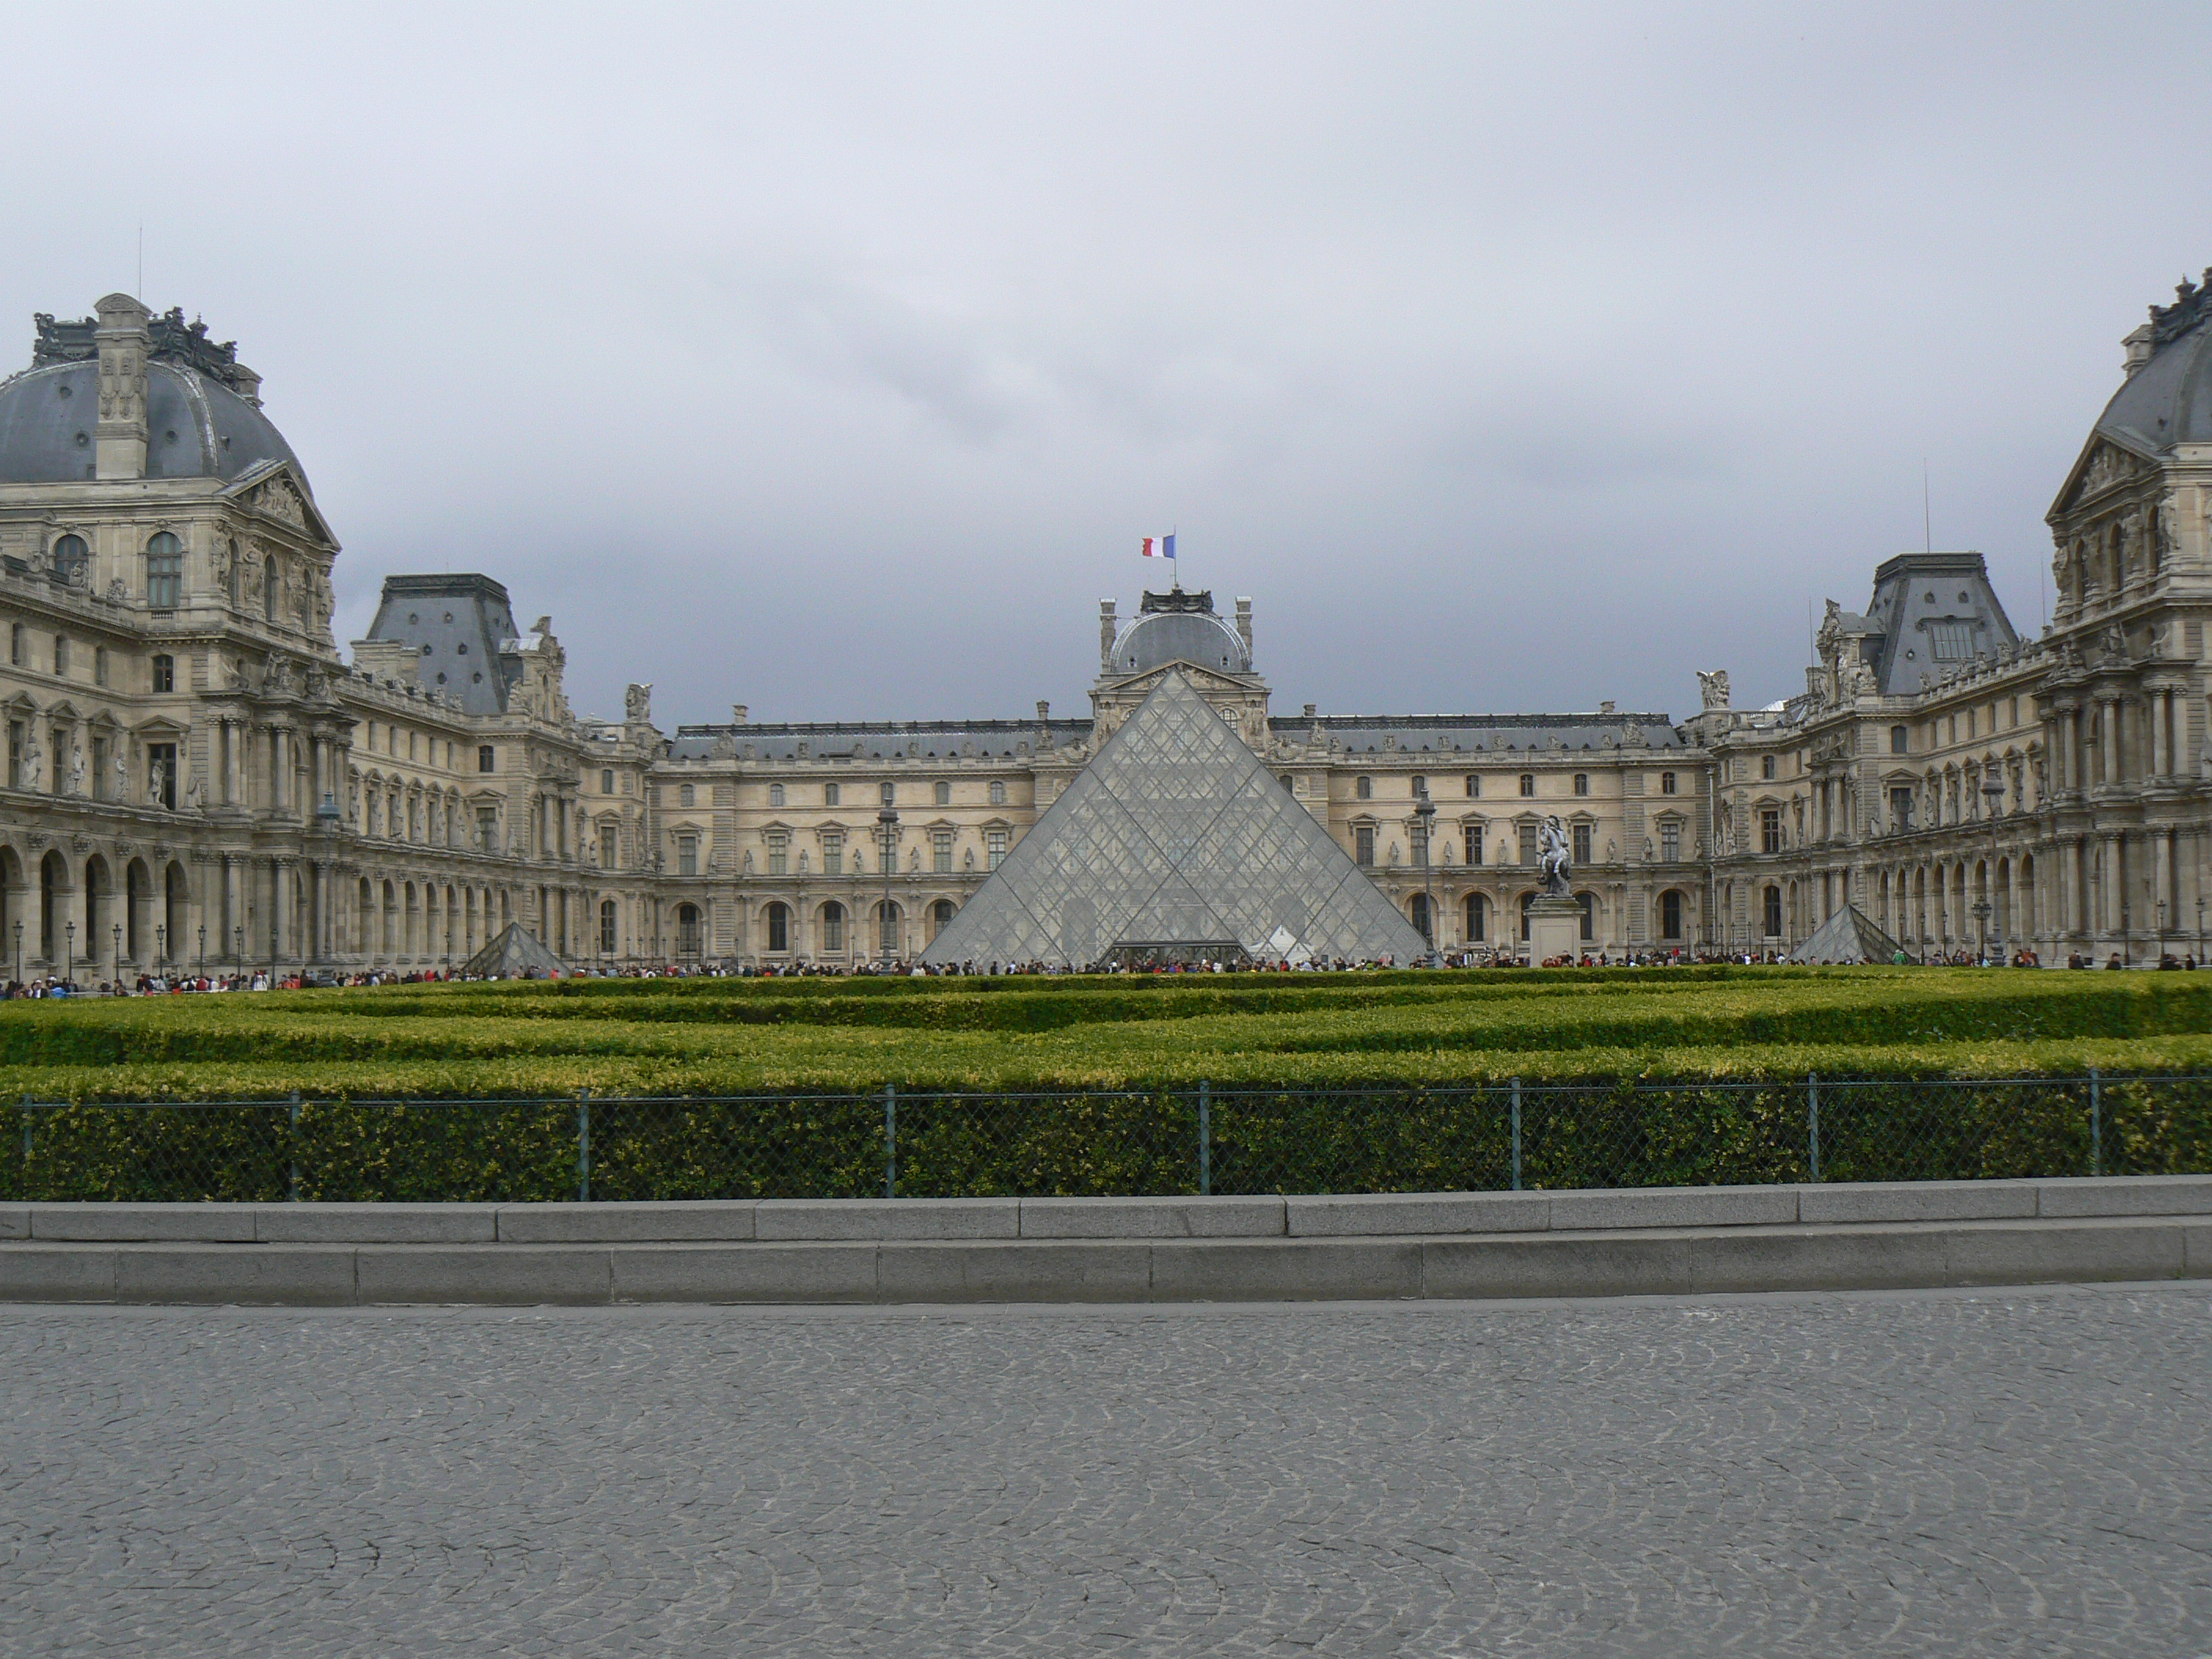 Museum of Louvre